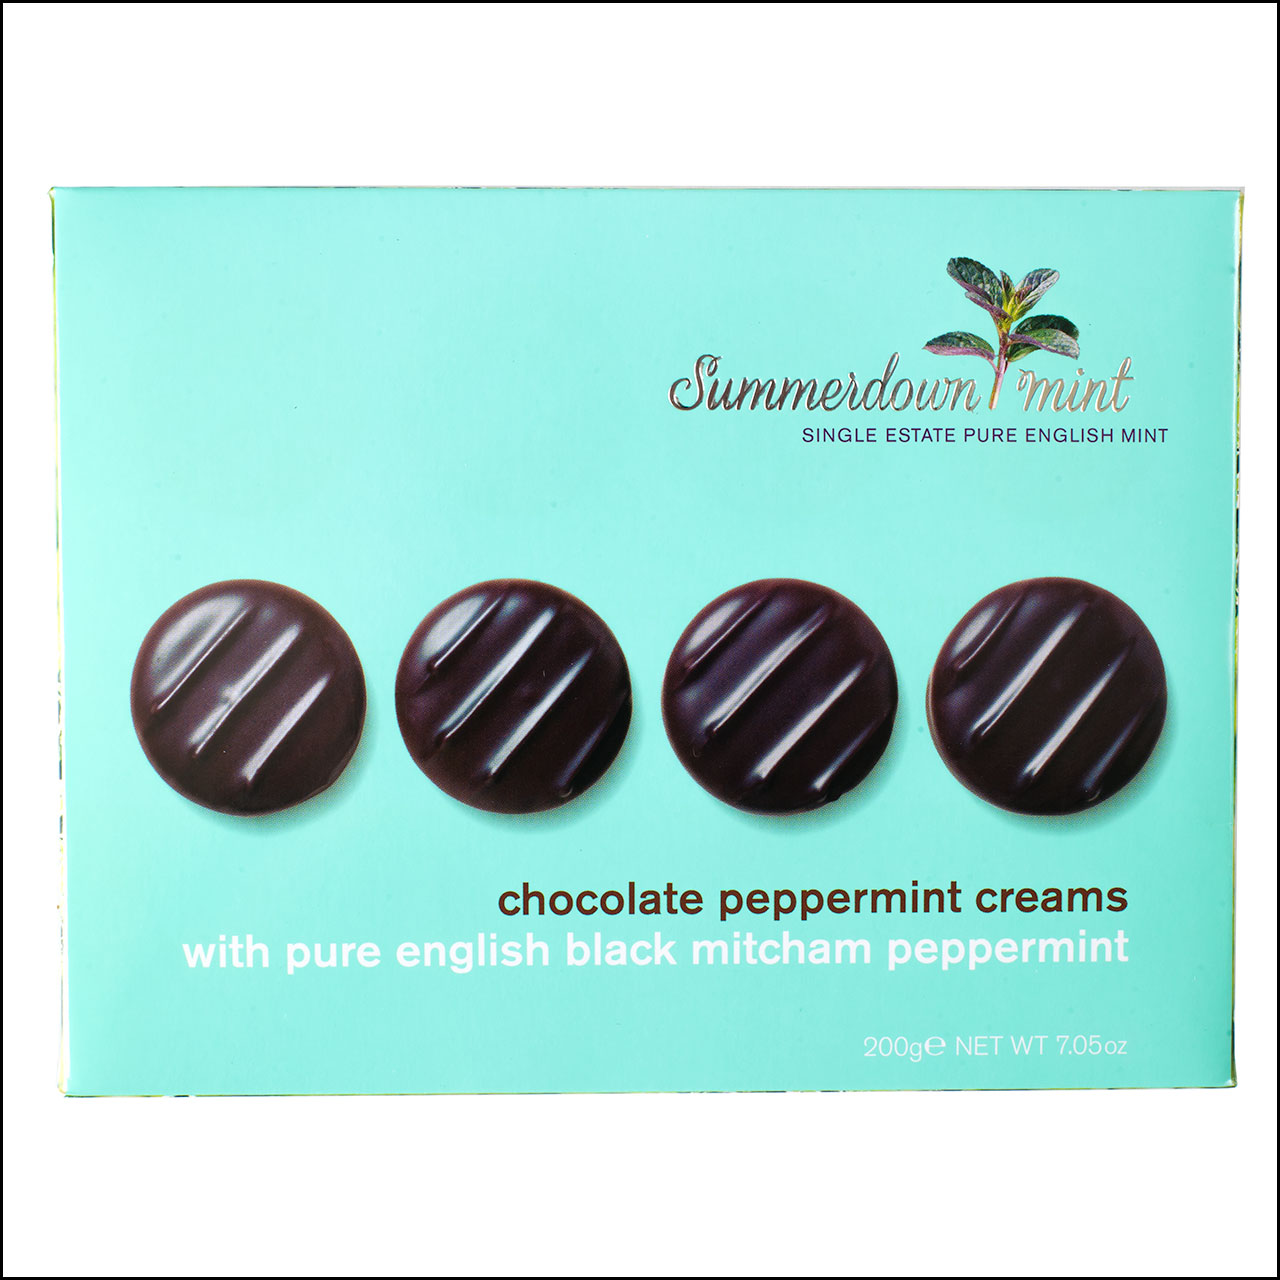 Summerdown Mint Chocolate Peppermint Creams